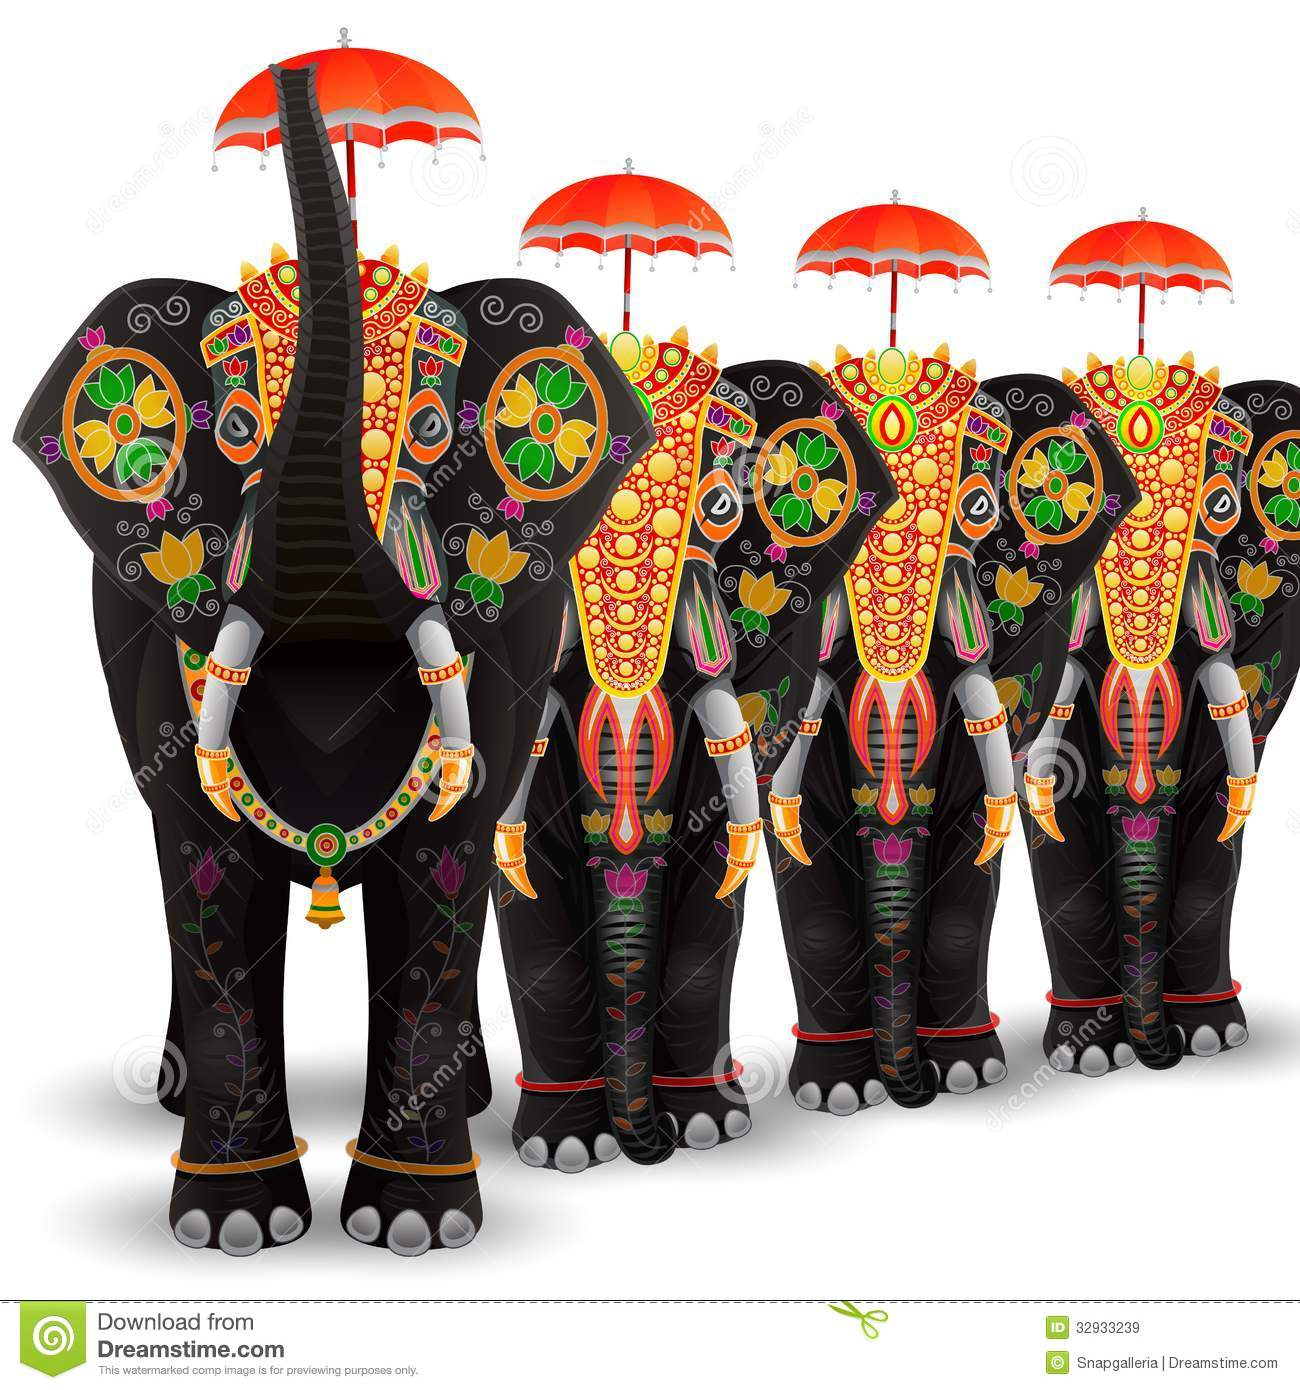 Decorated Elephant Of South India Royalty Free Stock Images.